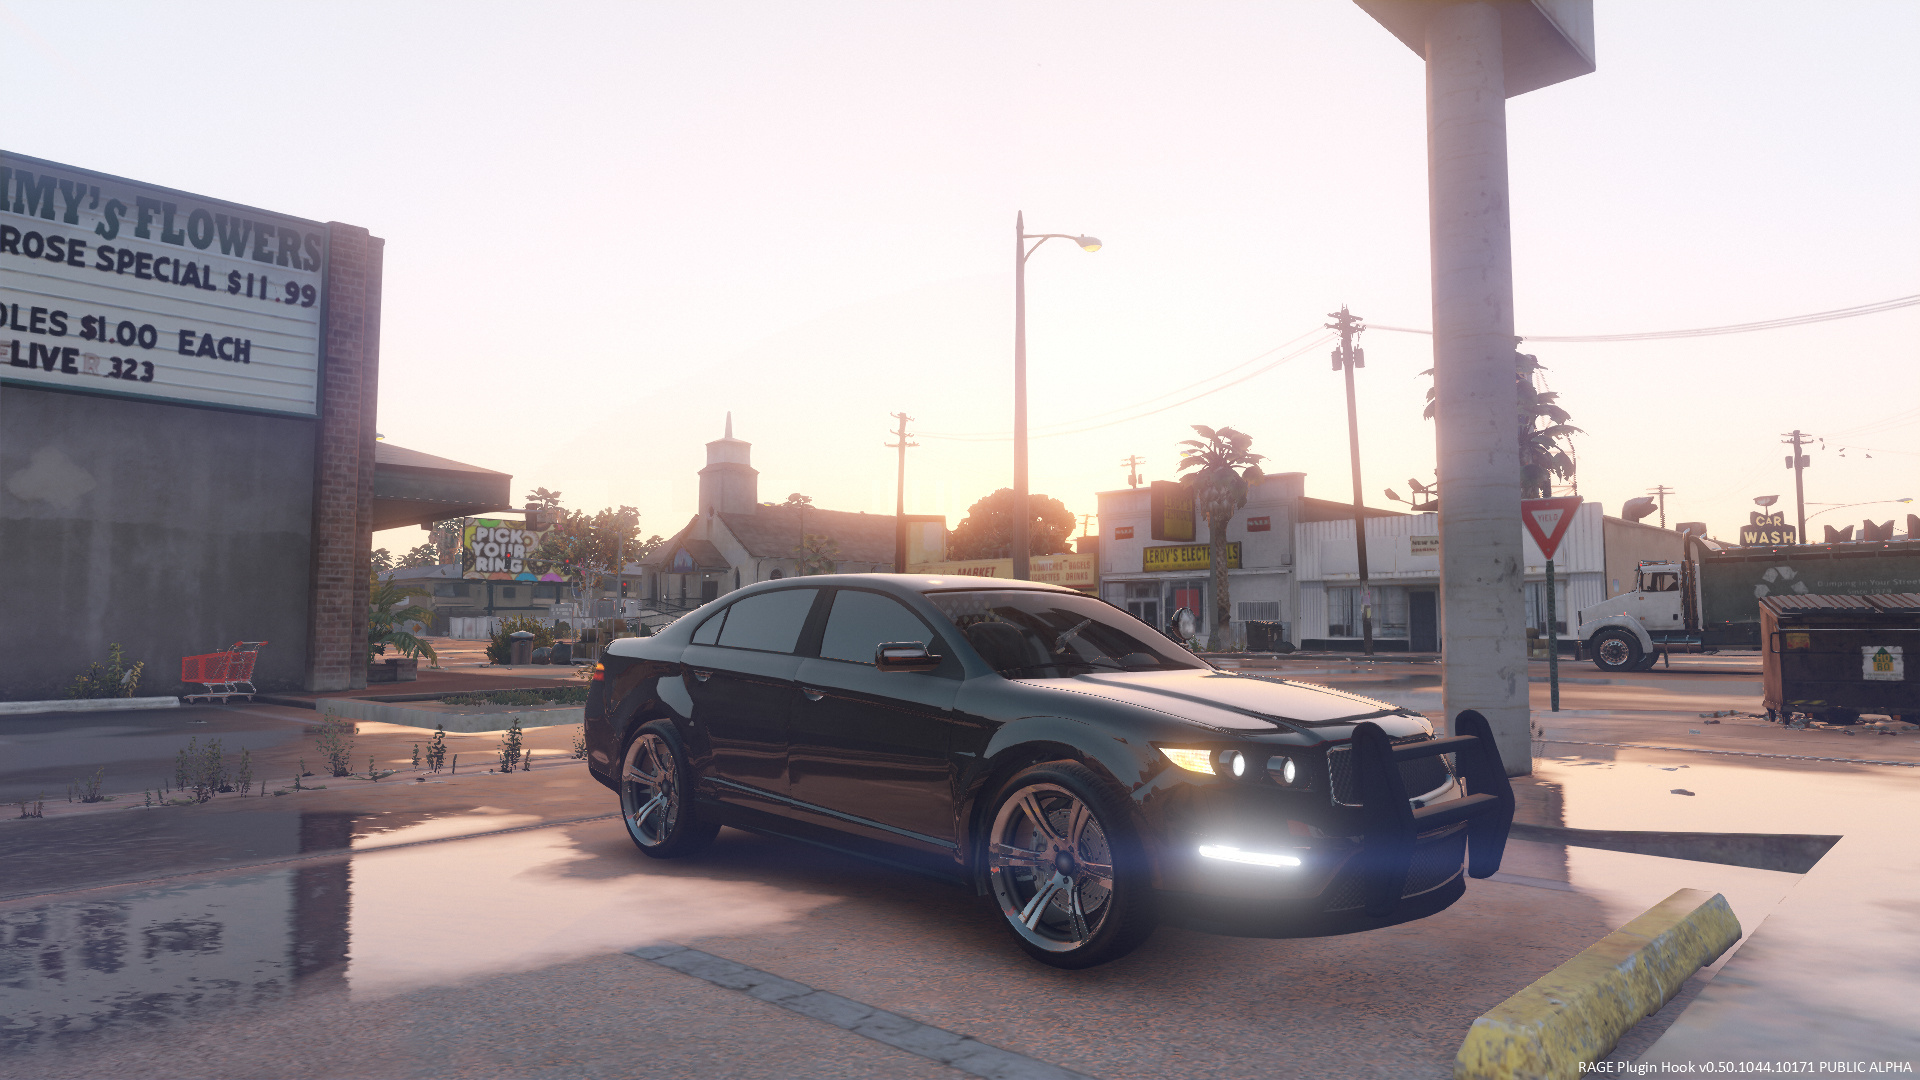 Unmarked police car gta 5 - 92107a Gta5 2017 01 03 01 13 45 88